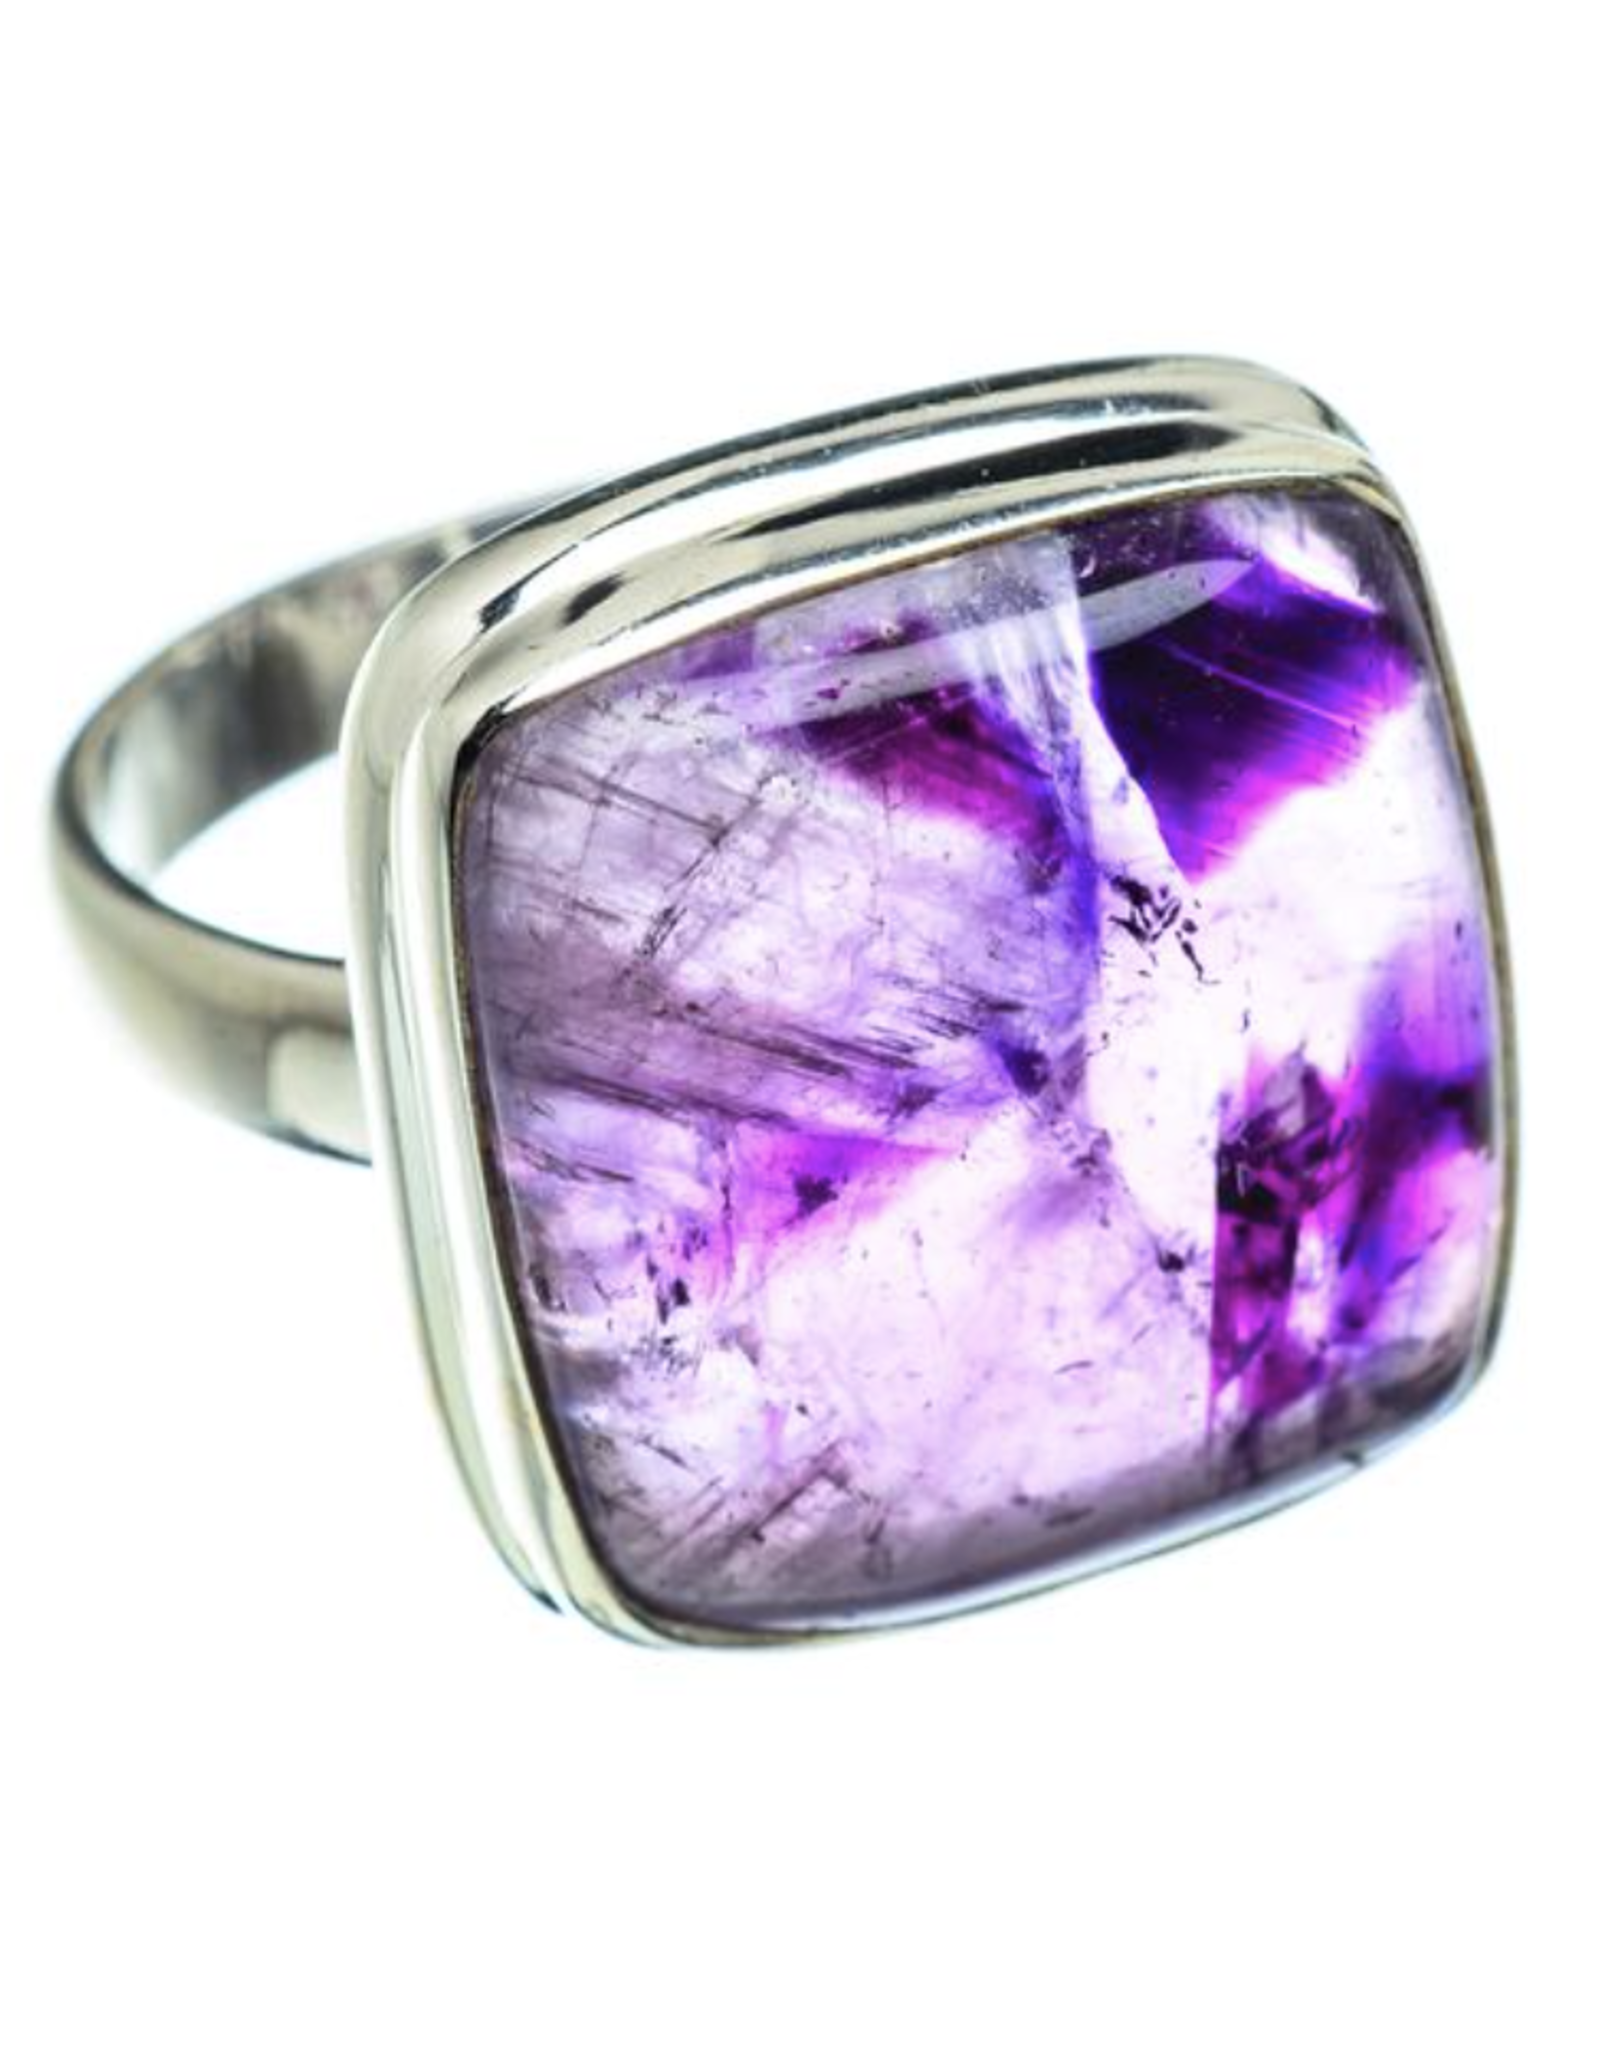 Chevron Amethyst Ring - Size 8.5